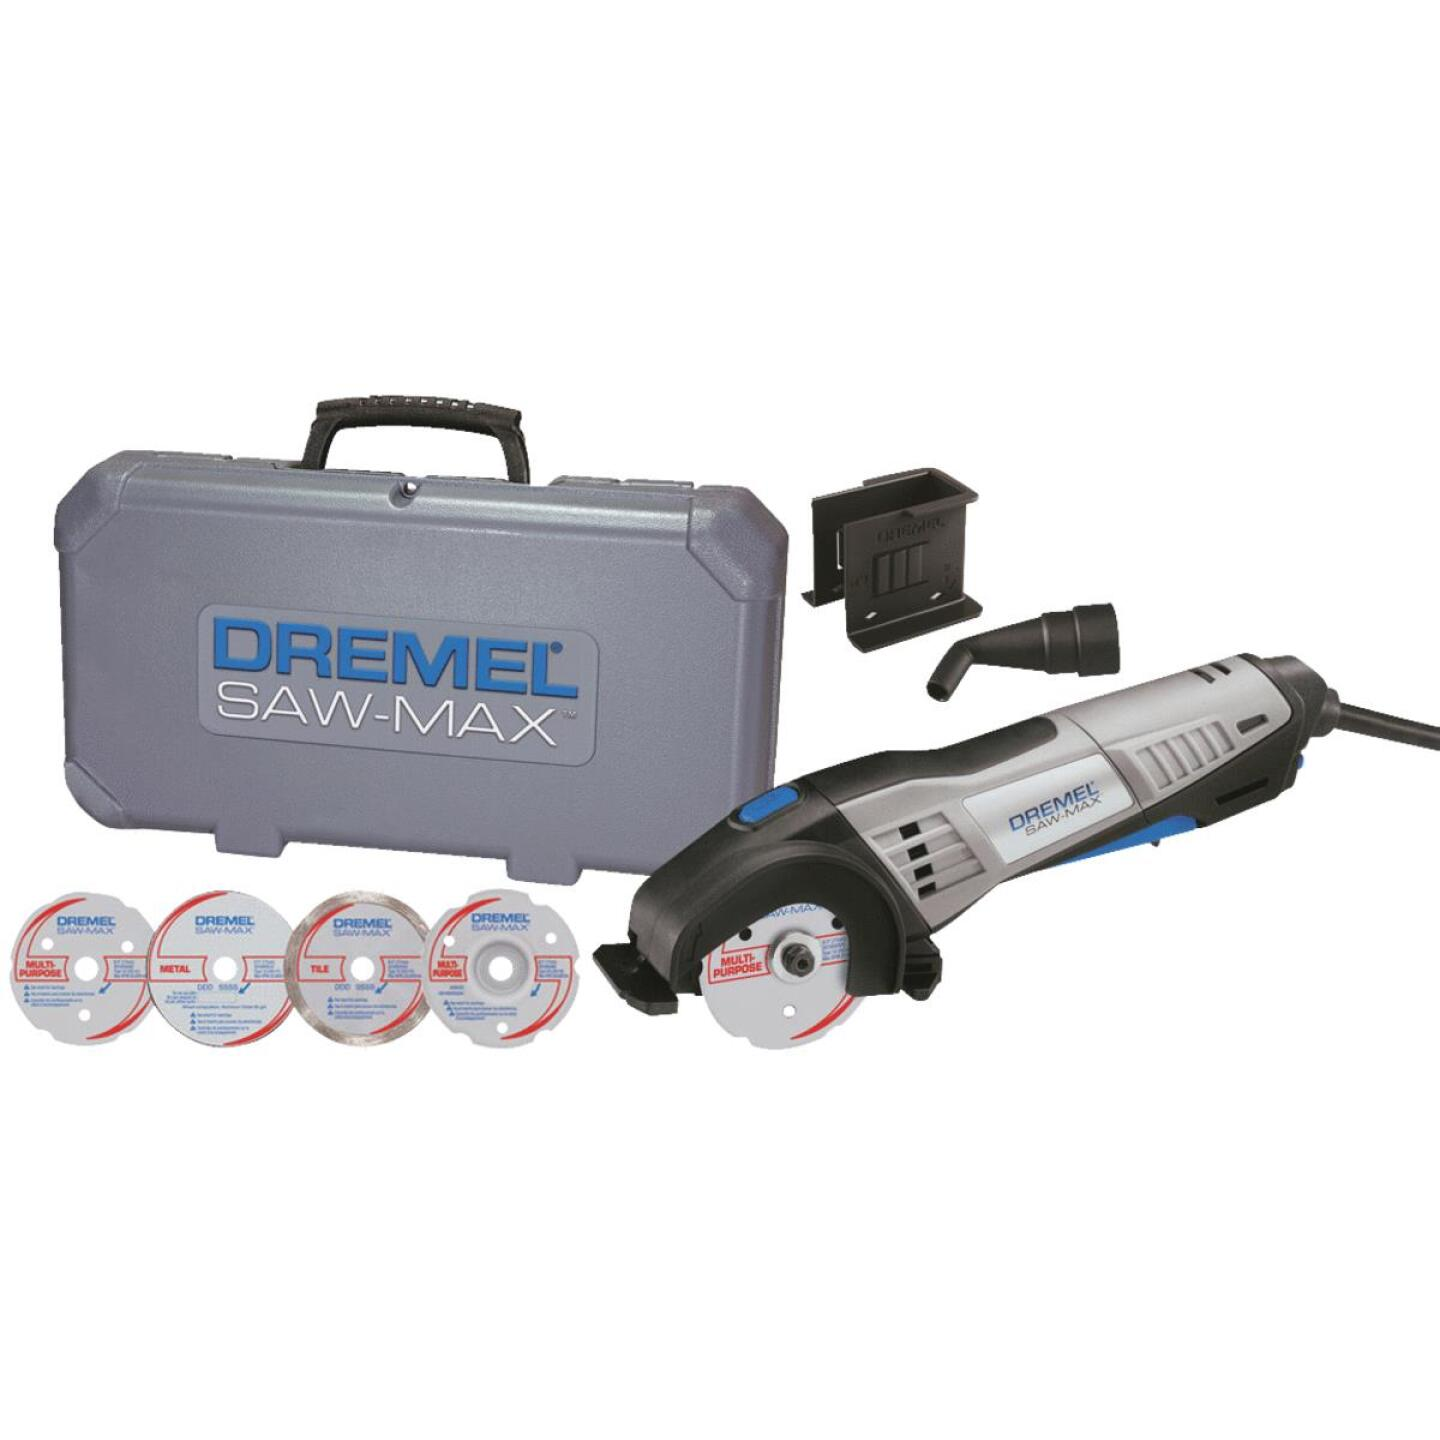 Dremel Saw-Max 3 In. 6-Amp Circular Saw Kit Image 1